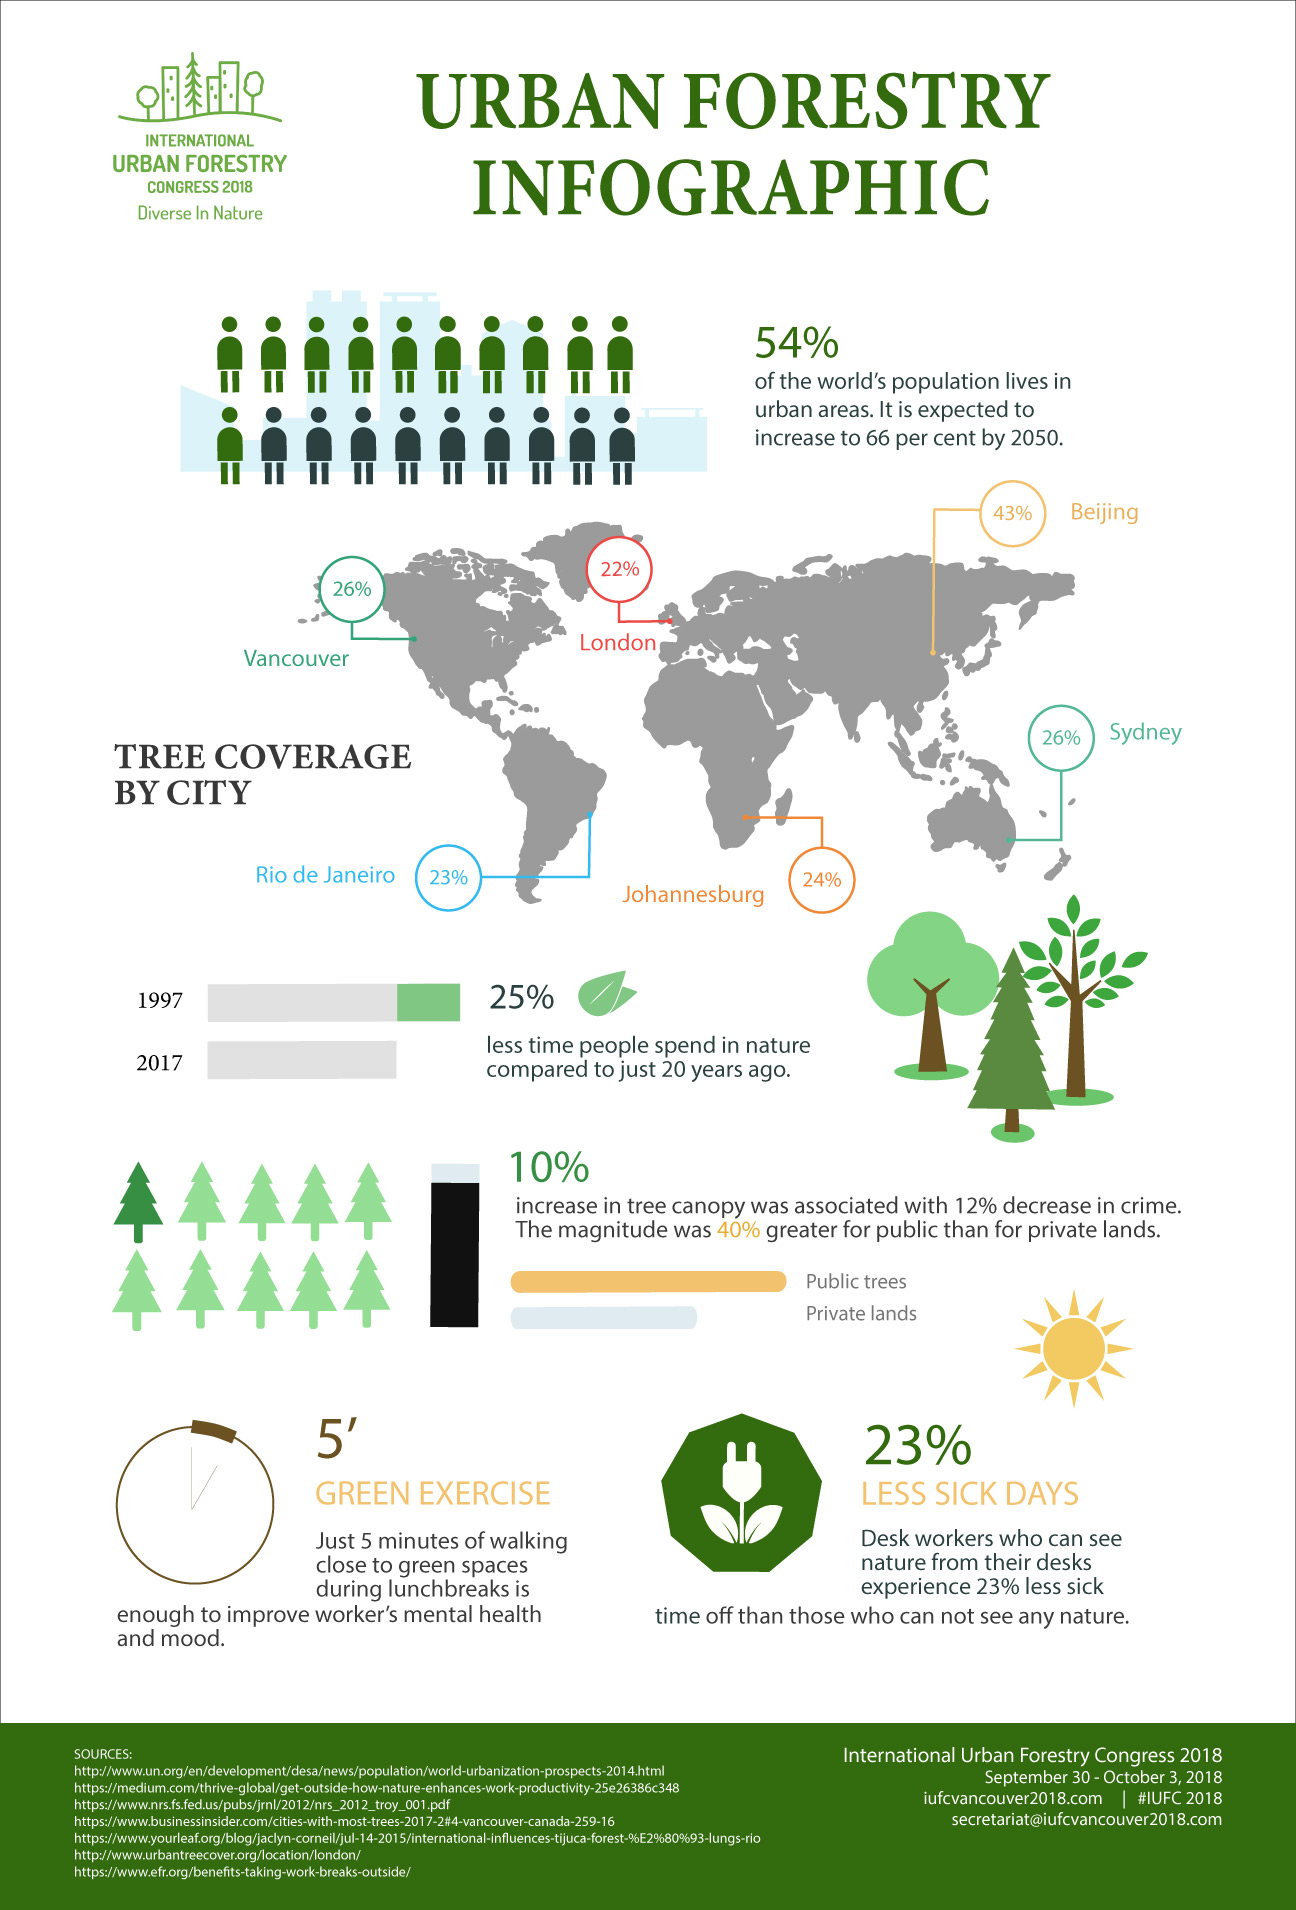 IUFC 2018 Urban Forestry Infographic